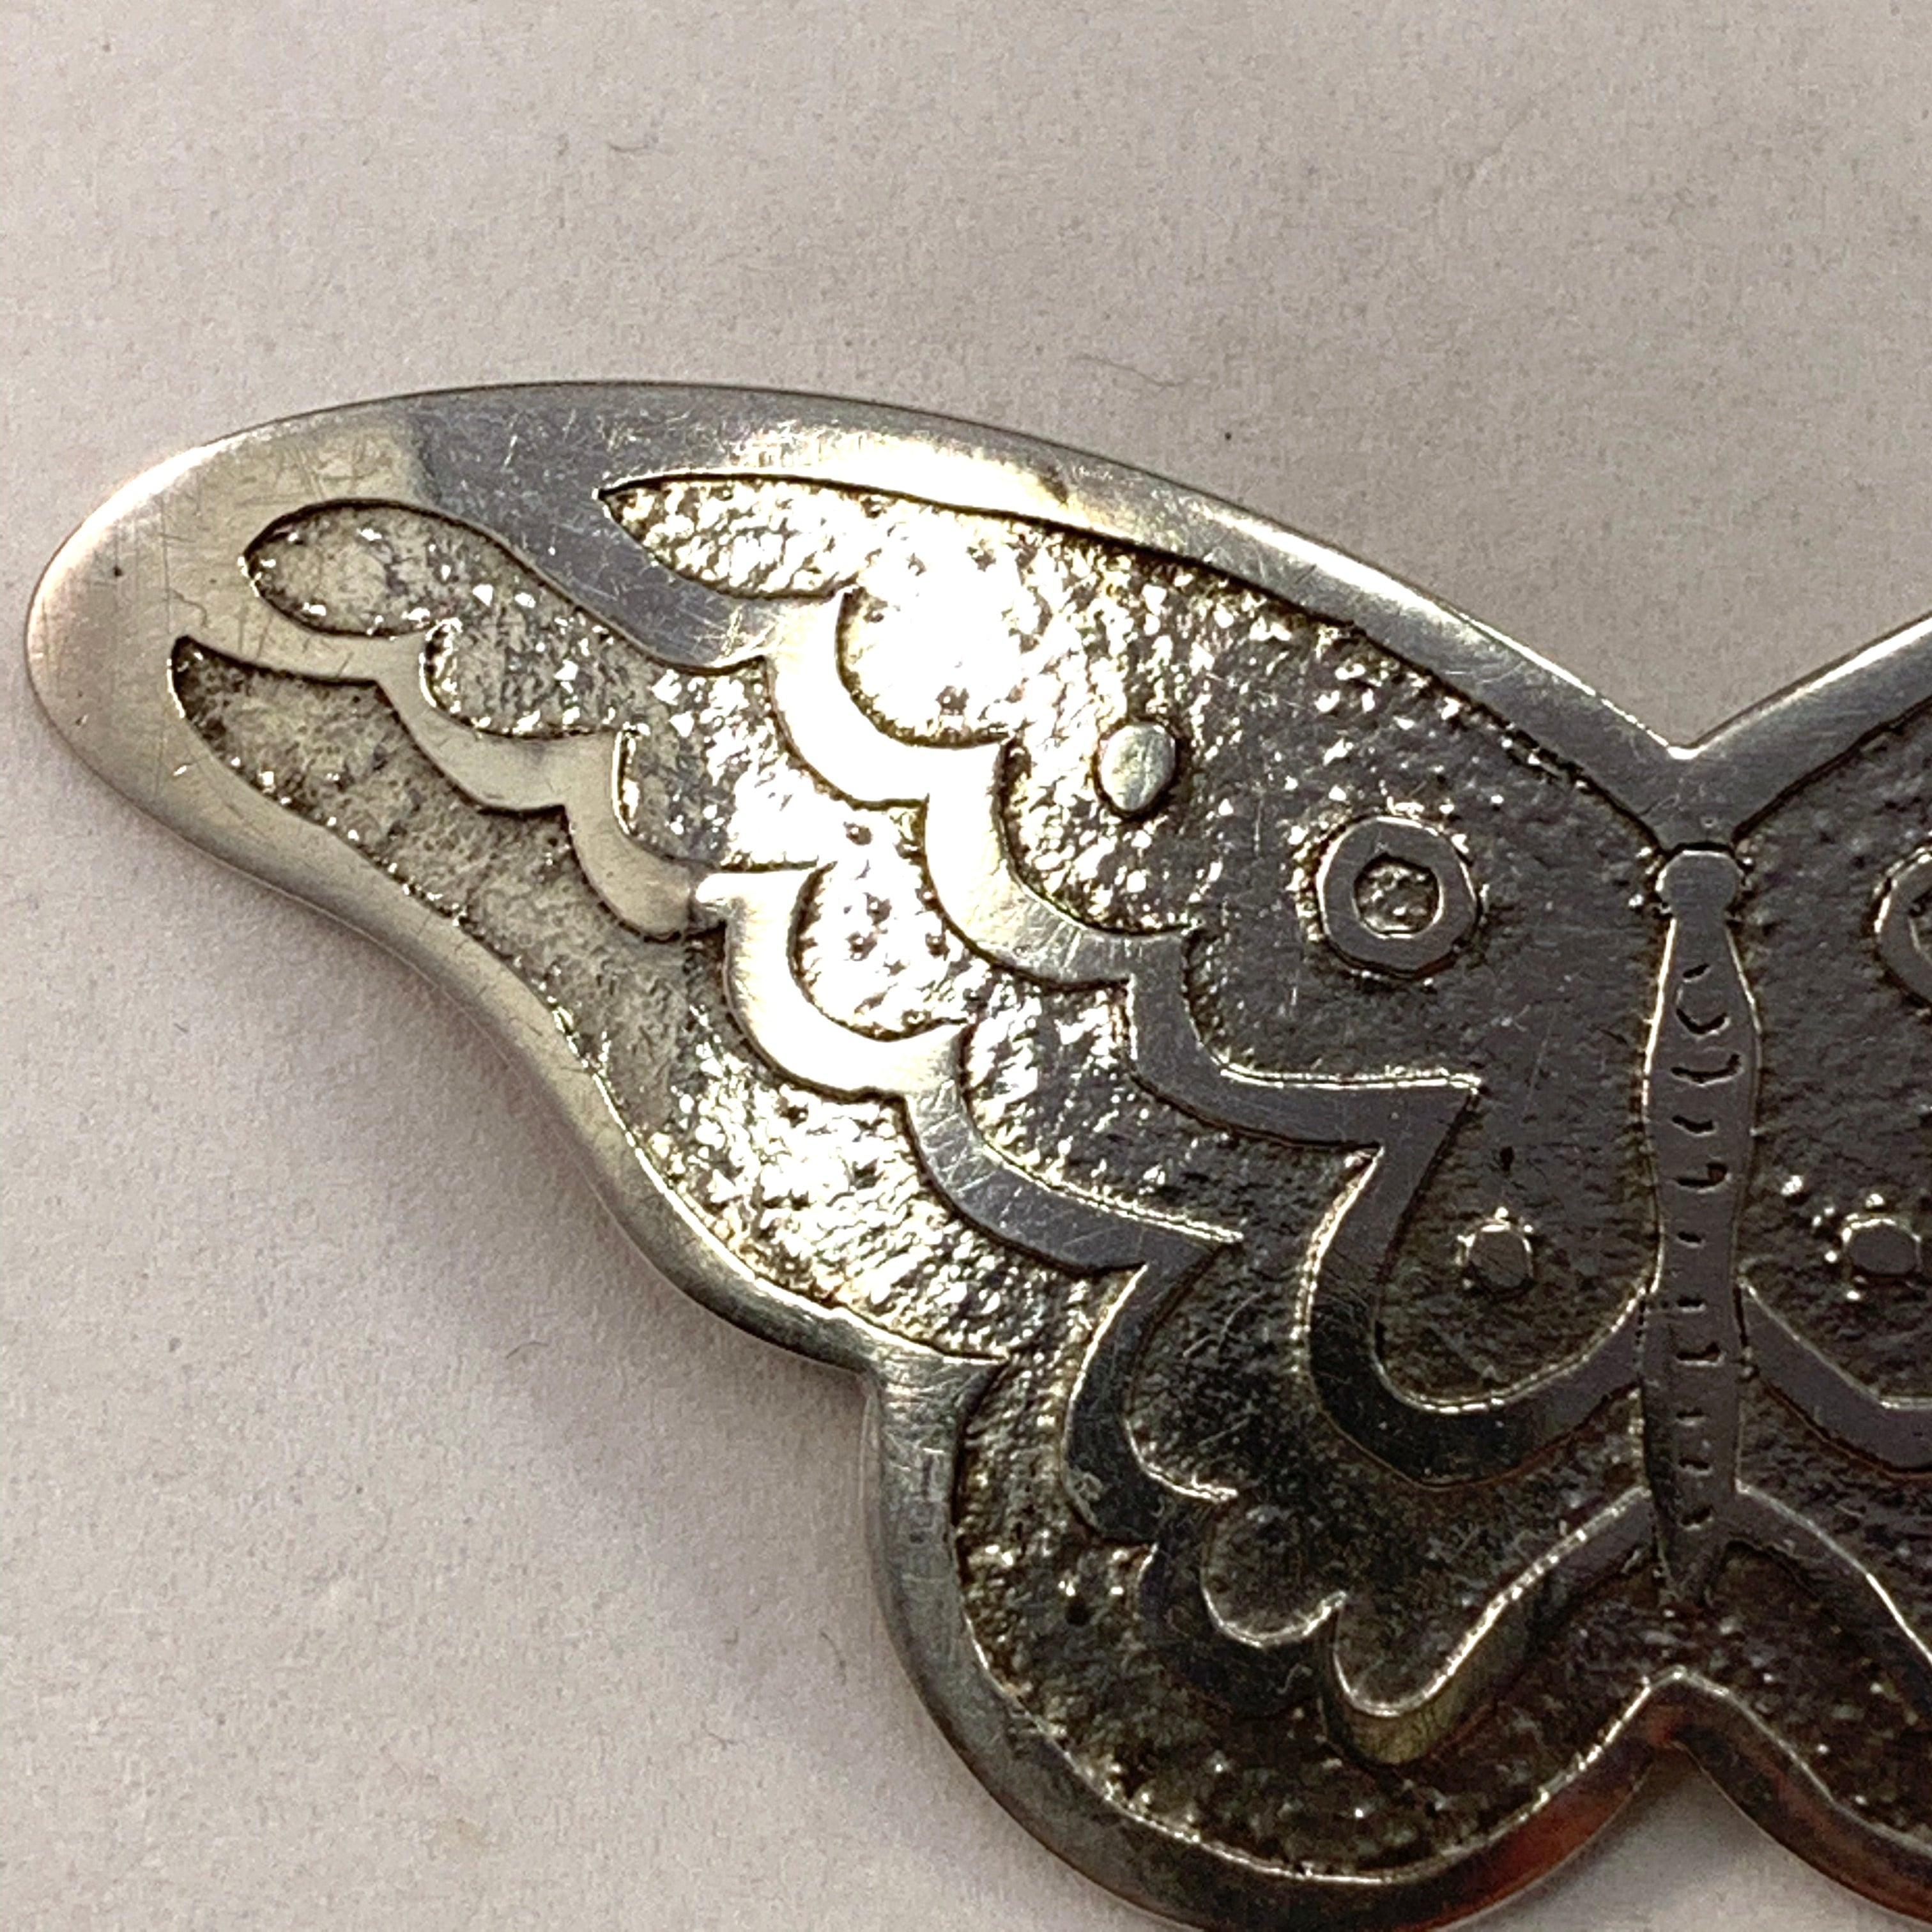 A Nilsson, father of Wiwen Nilsson, Sweden year 1905 Antique Art Nouveau Butterfly Brooch.